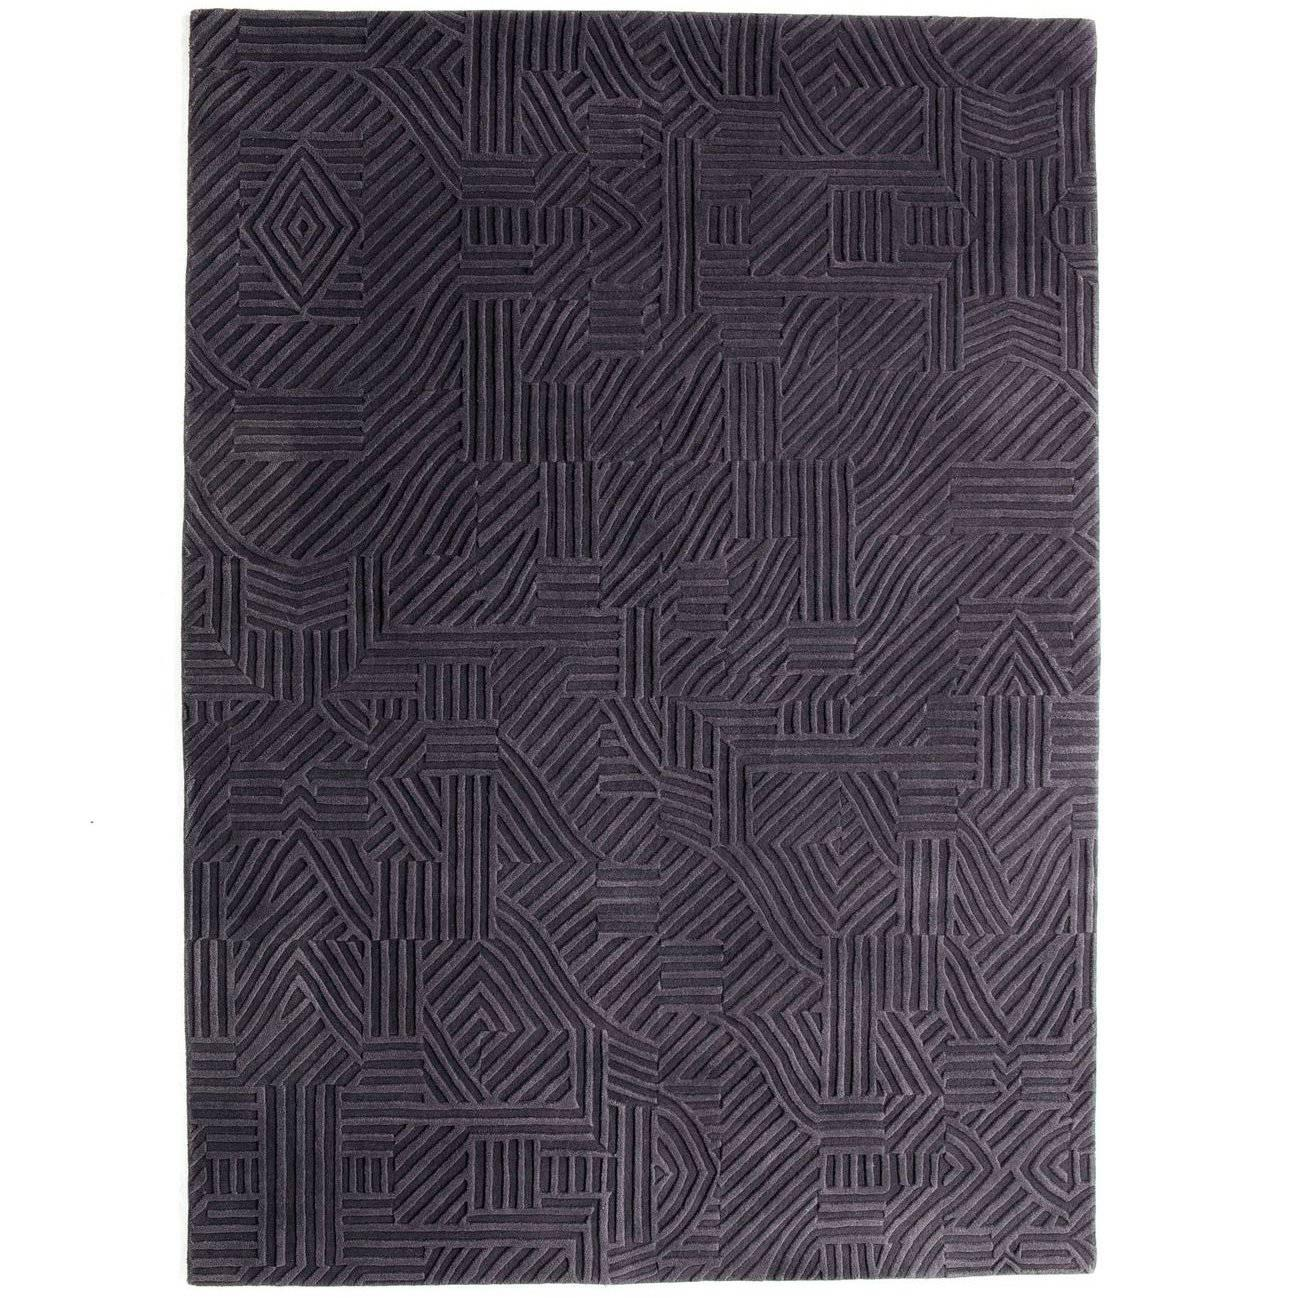 African Pattern Three Area Rug in Hand-Tufted Wool by Milton Glaser Medium